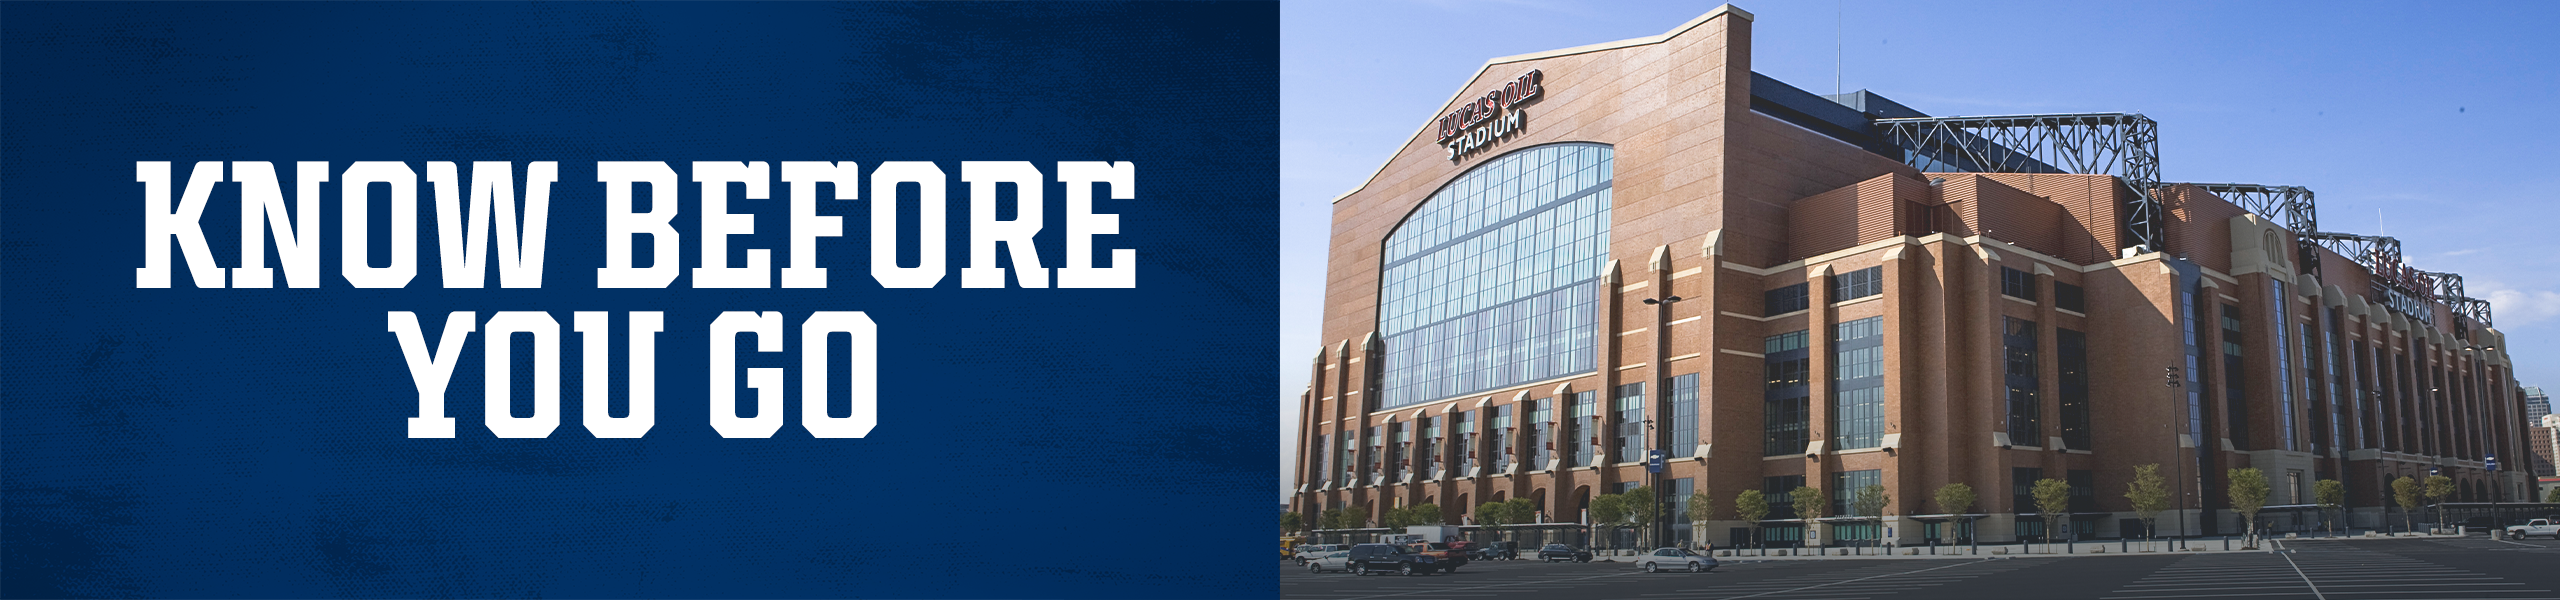 Indianapolis Colts Know Before You Go  Full stadium fan safety guide at Lucas Oil Stadium